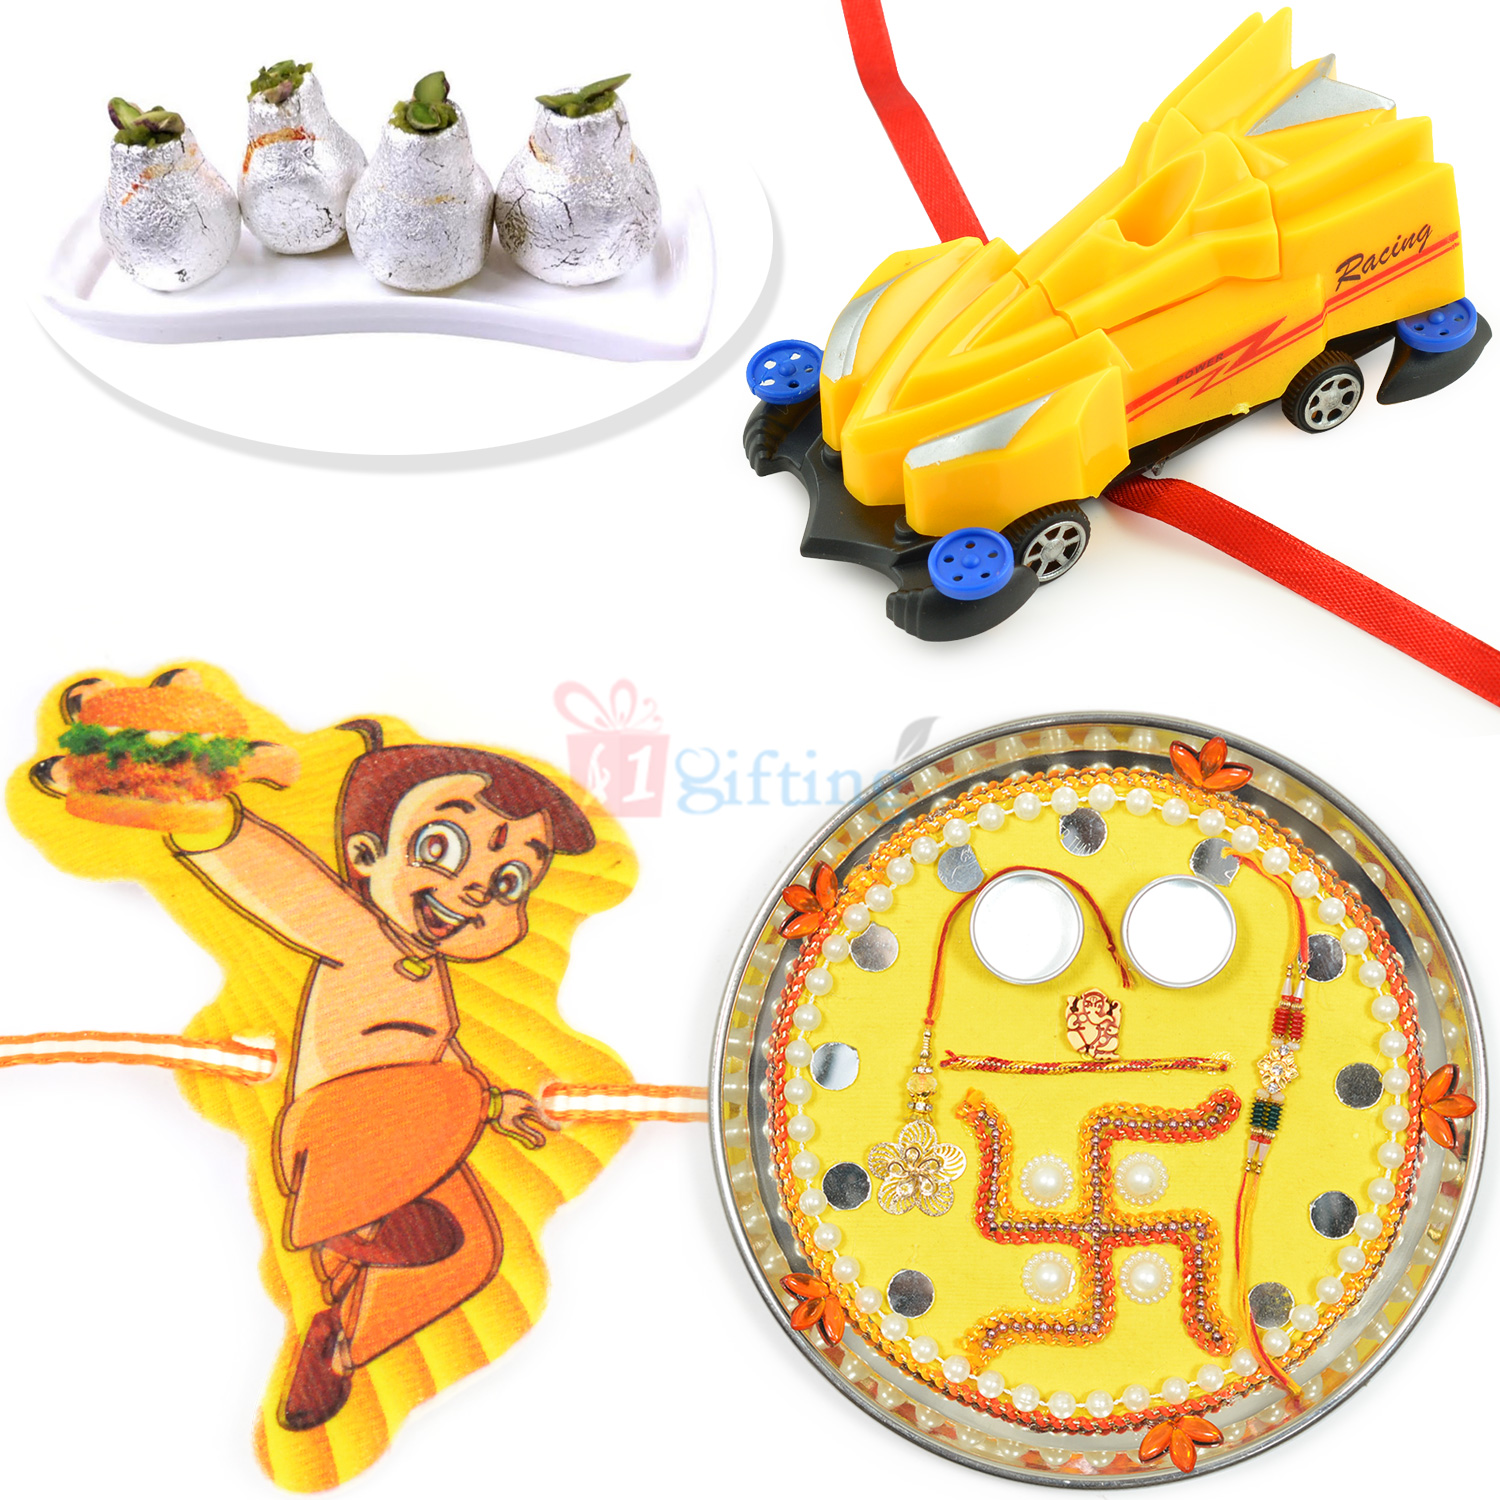 Rakhi Pooja Thali Kaju Kalash Hamper with 2 Trendy Kids Rakhis